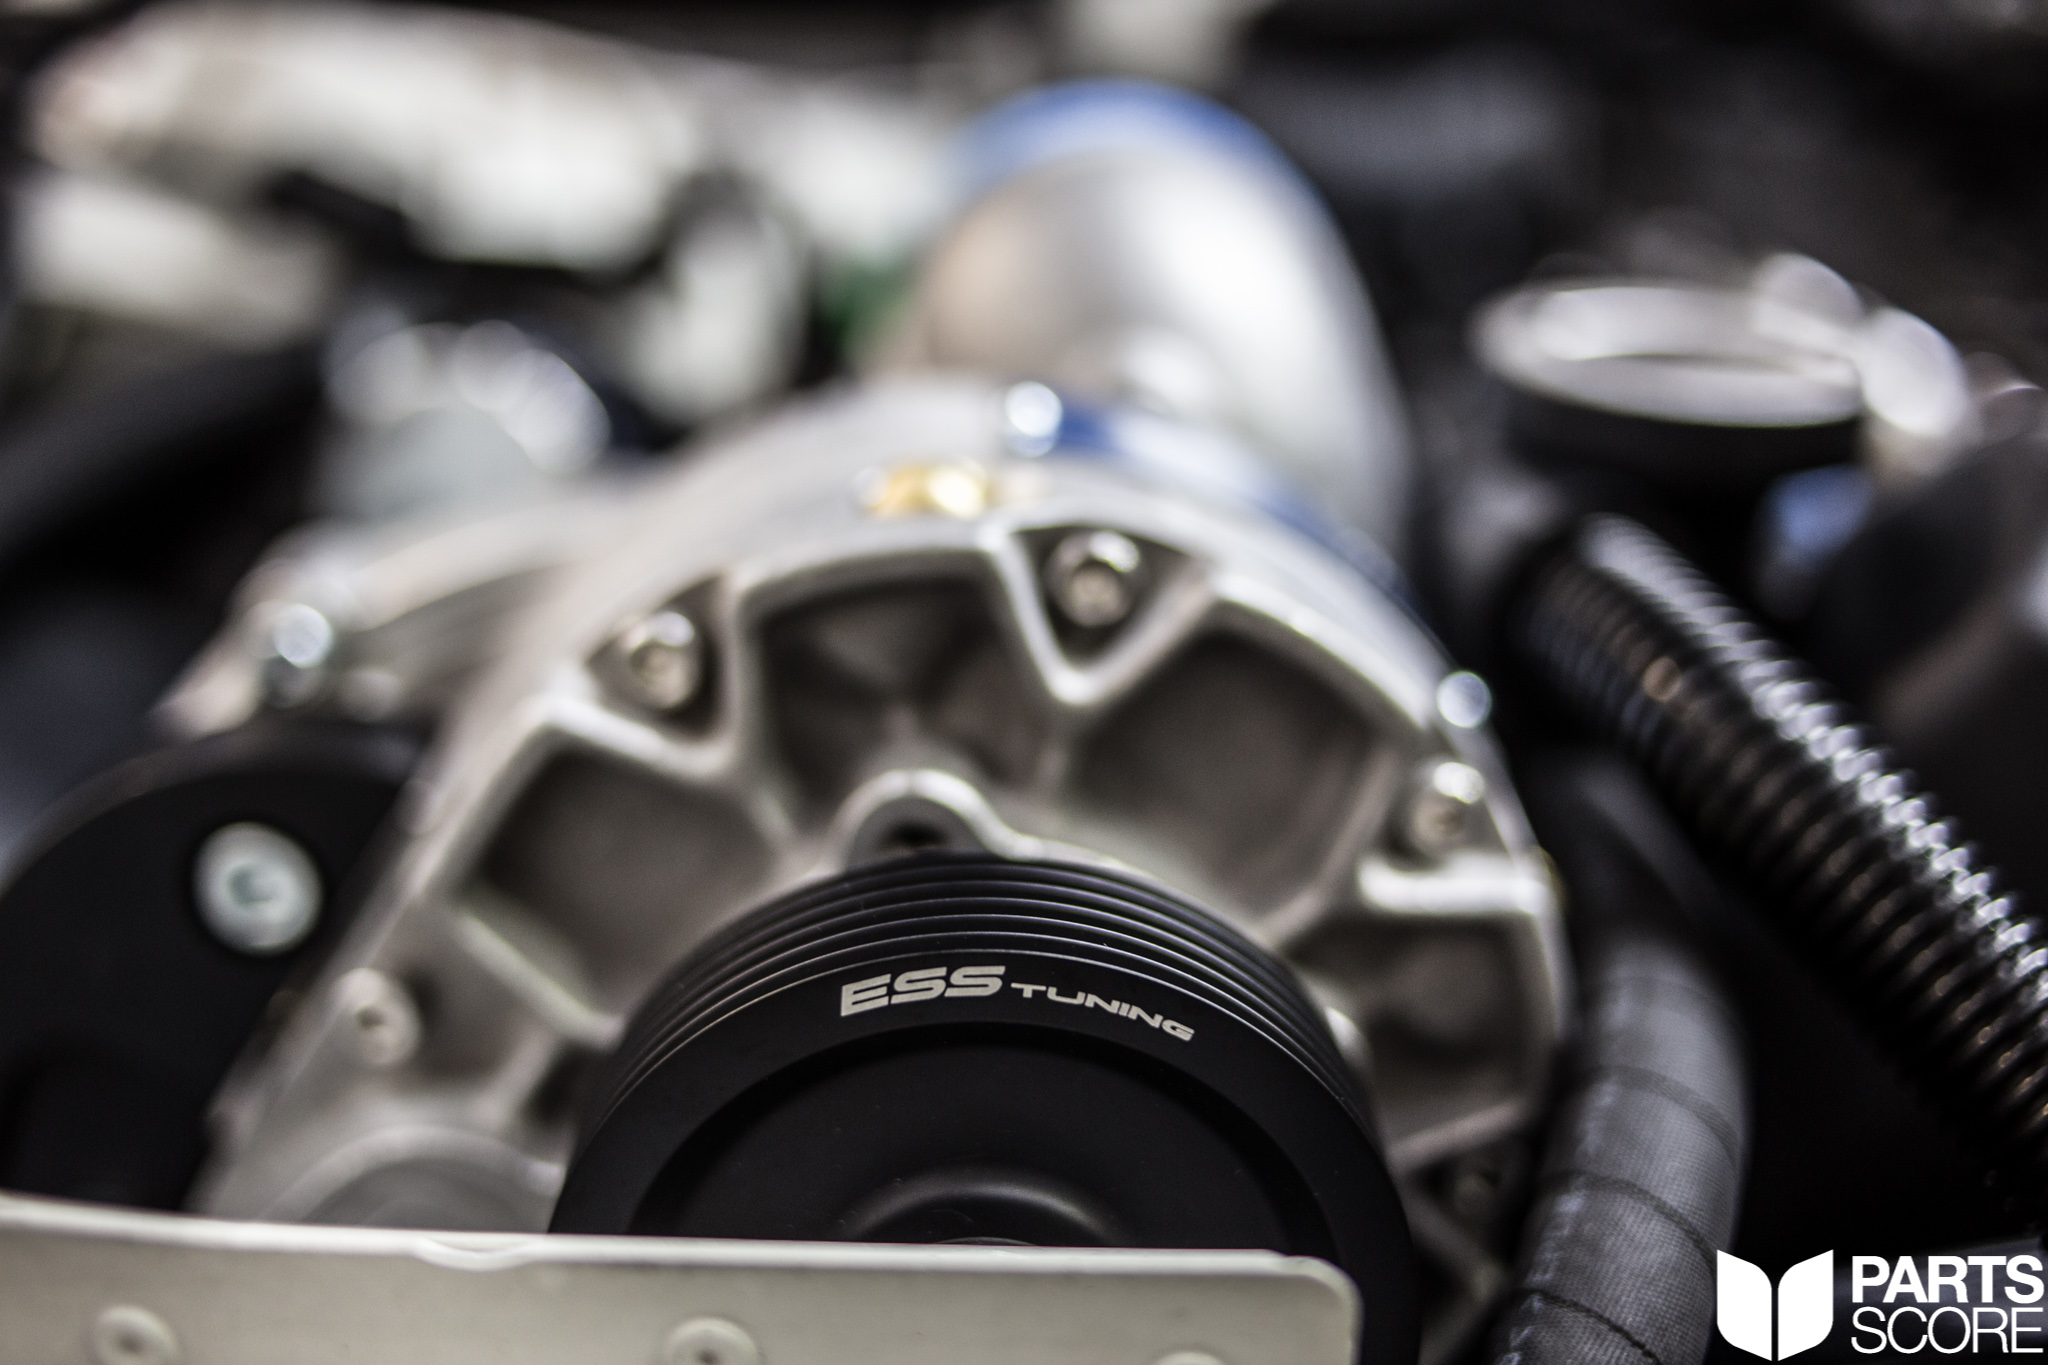 parts score, partsscore, ess tuning, ess, ess tuned, ess supercharger, ess supercharged, supercharged, m5, e60, e60 m5, e60 m5 supercharger, m5 supercharger, supercharged e60, supercharged m5, bmw performance, bmw, bmwm, bmw m power, bmw m performance, superchargedbmw, v10, s85, supercharged s85, nogtrsonthedyno, boost, bmw v10